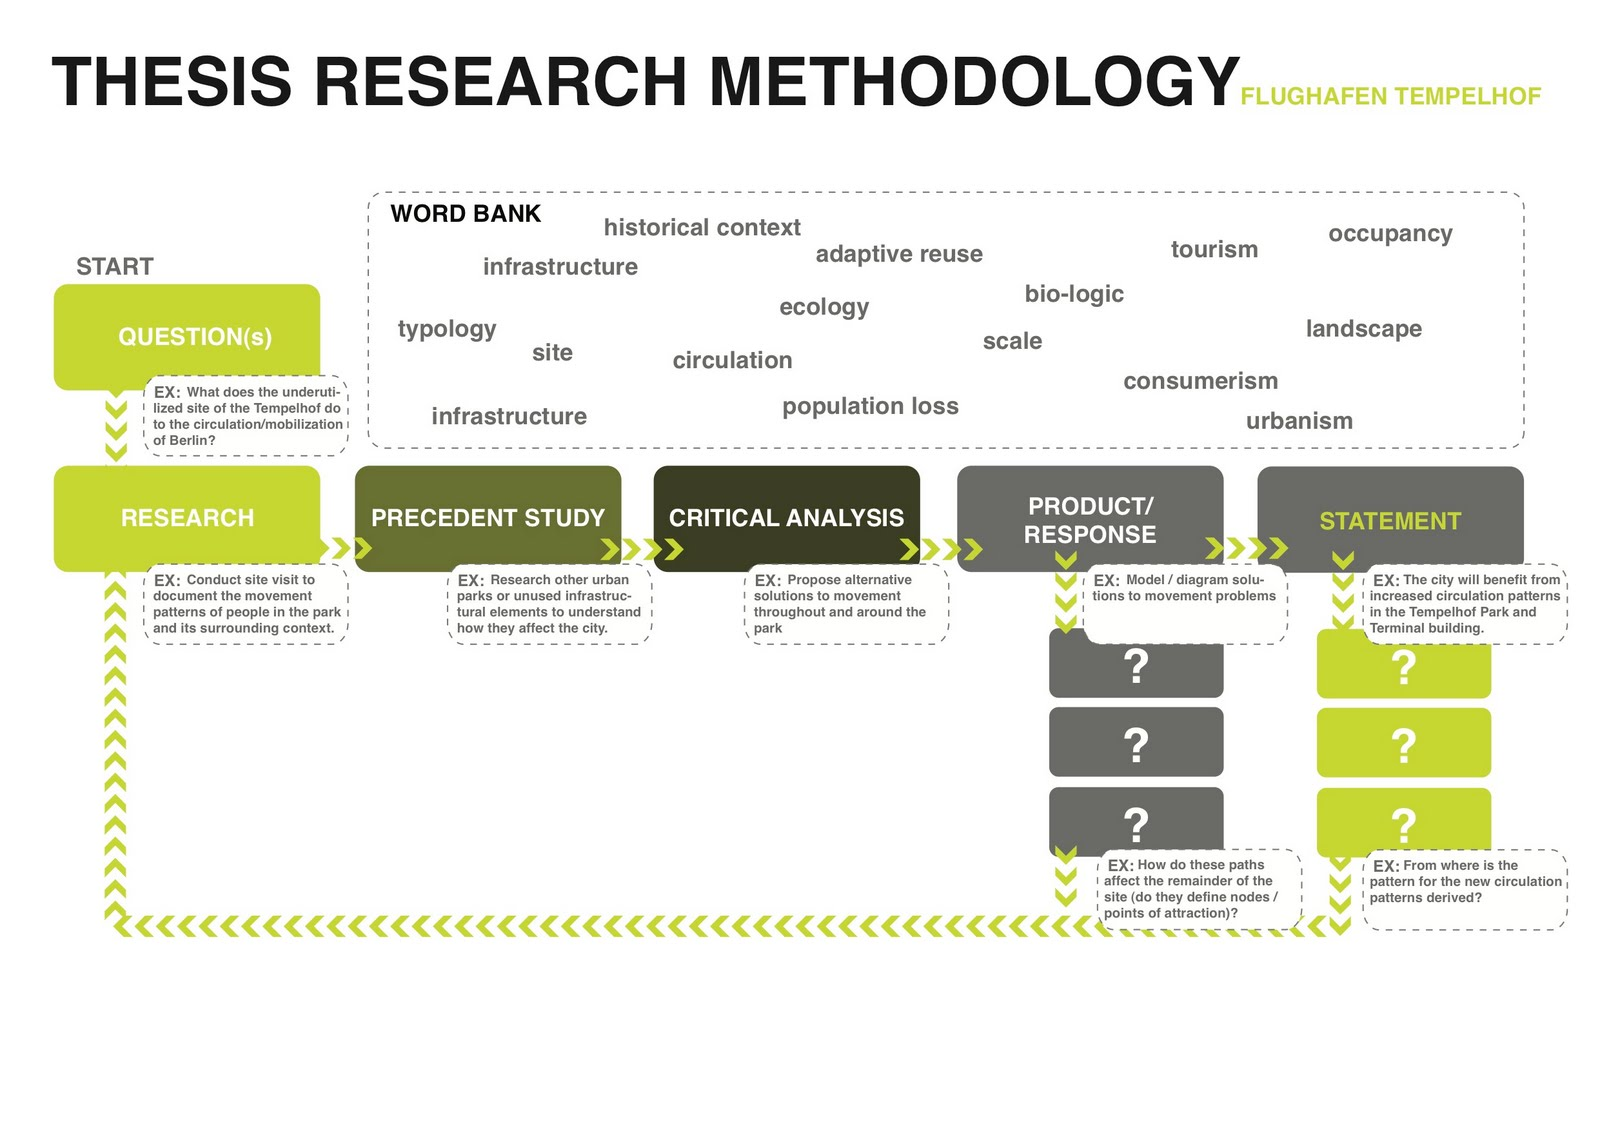 methodology examples in thesis Learn about the difference between 'methodology' and 'methods' and what to  include in the methodology section of your dissertation or thesis.